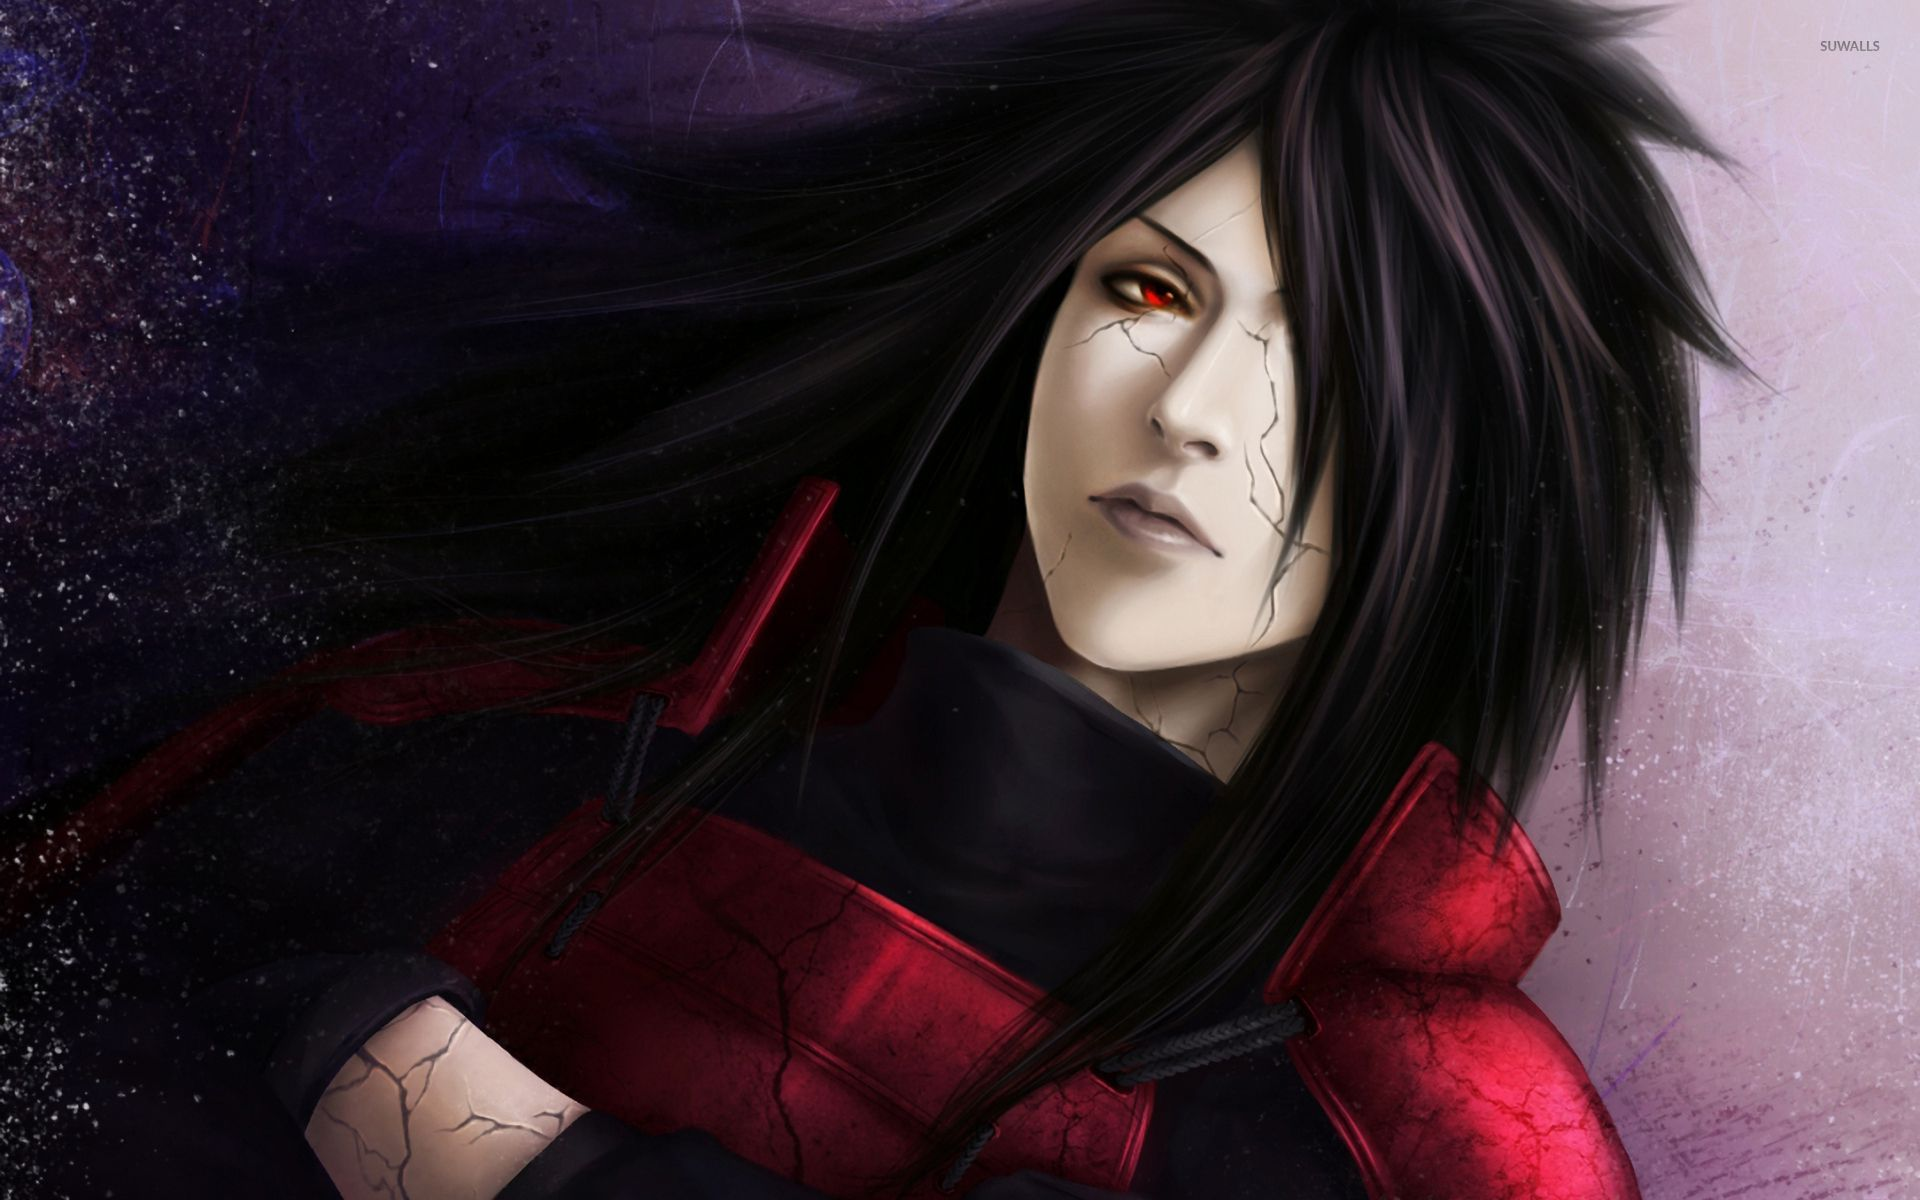 Madara Uchiha Naruto [4] Wallpaper Anime Wallpapers